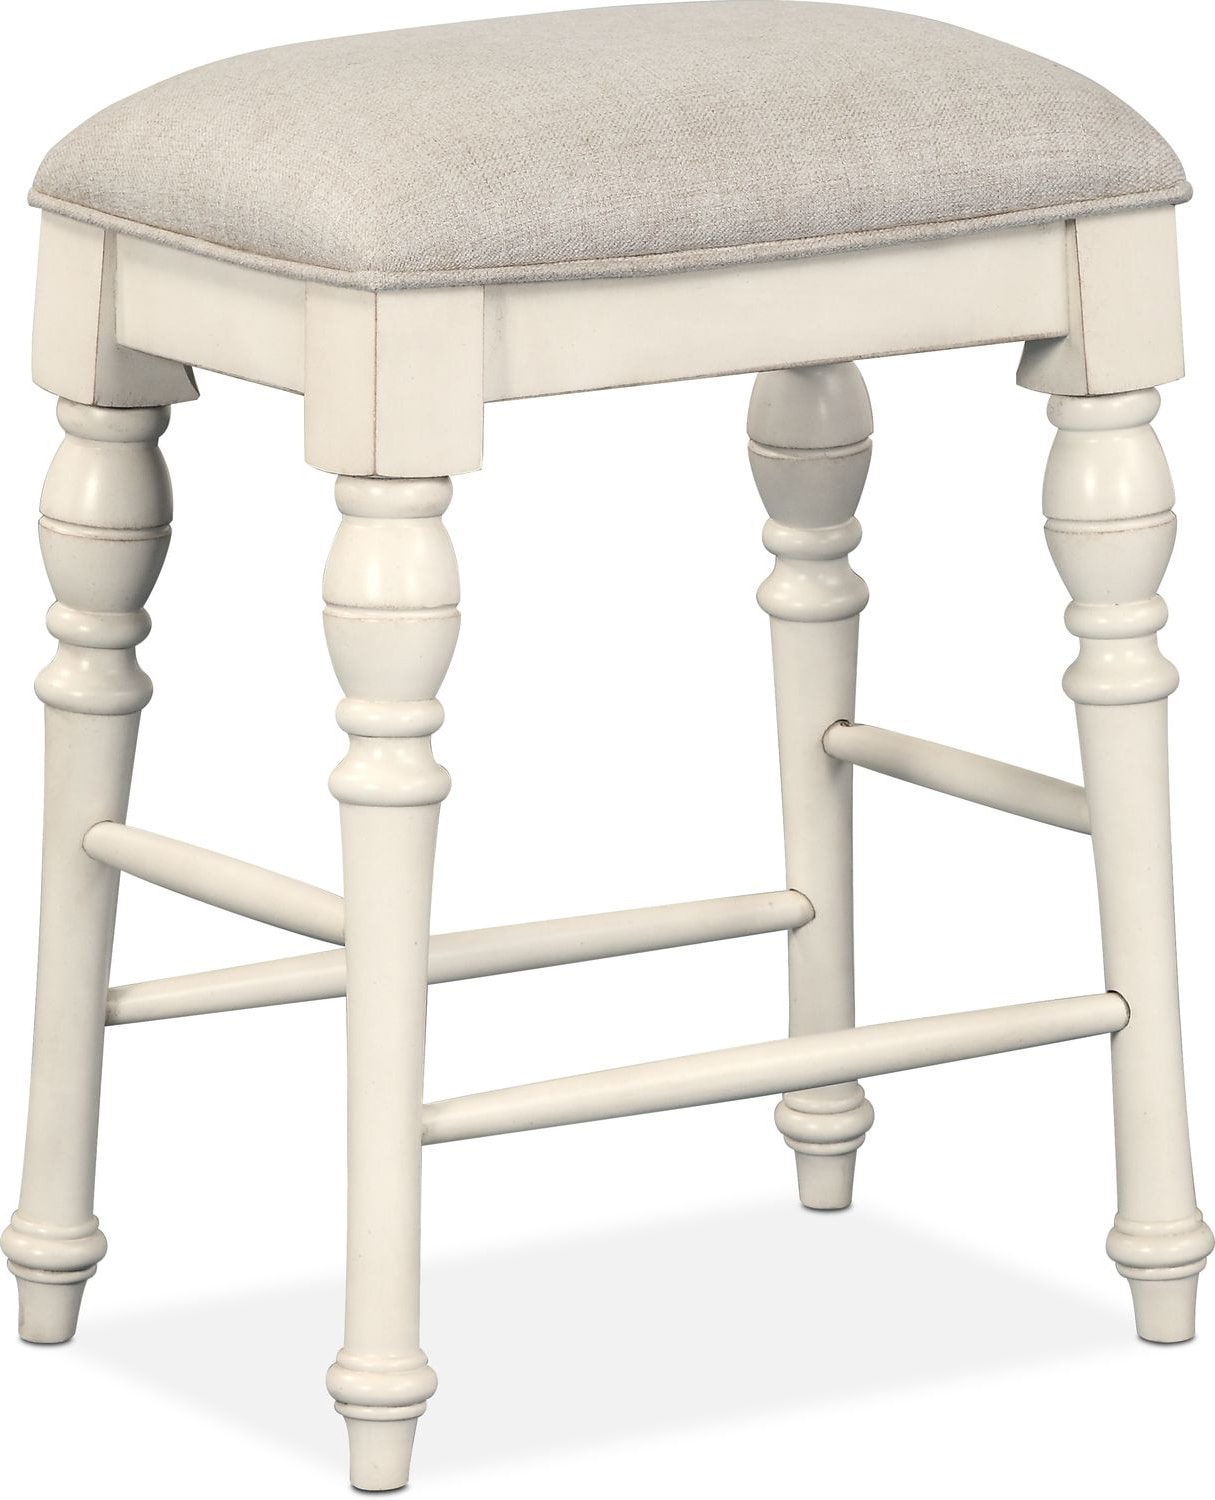 charleston counter height backless stool white american signature furniture. Black Bedroom Furniture Sets. Home Design Ideas